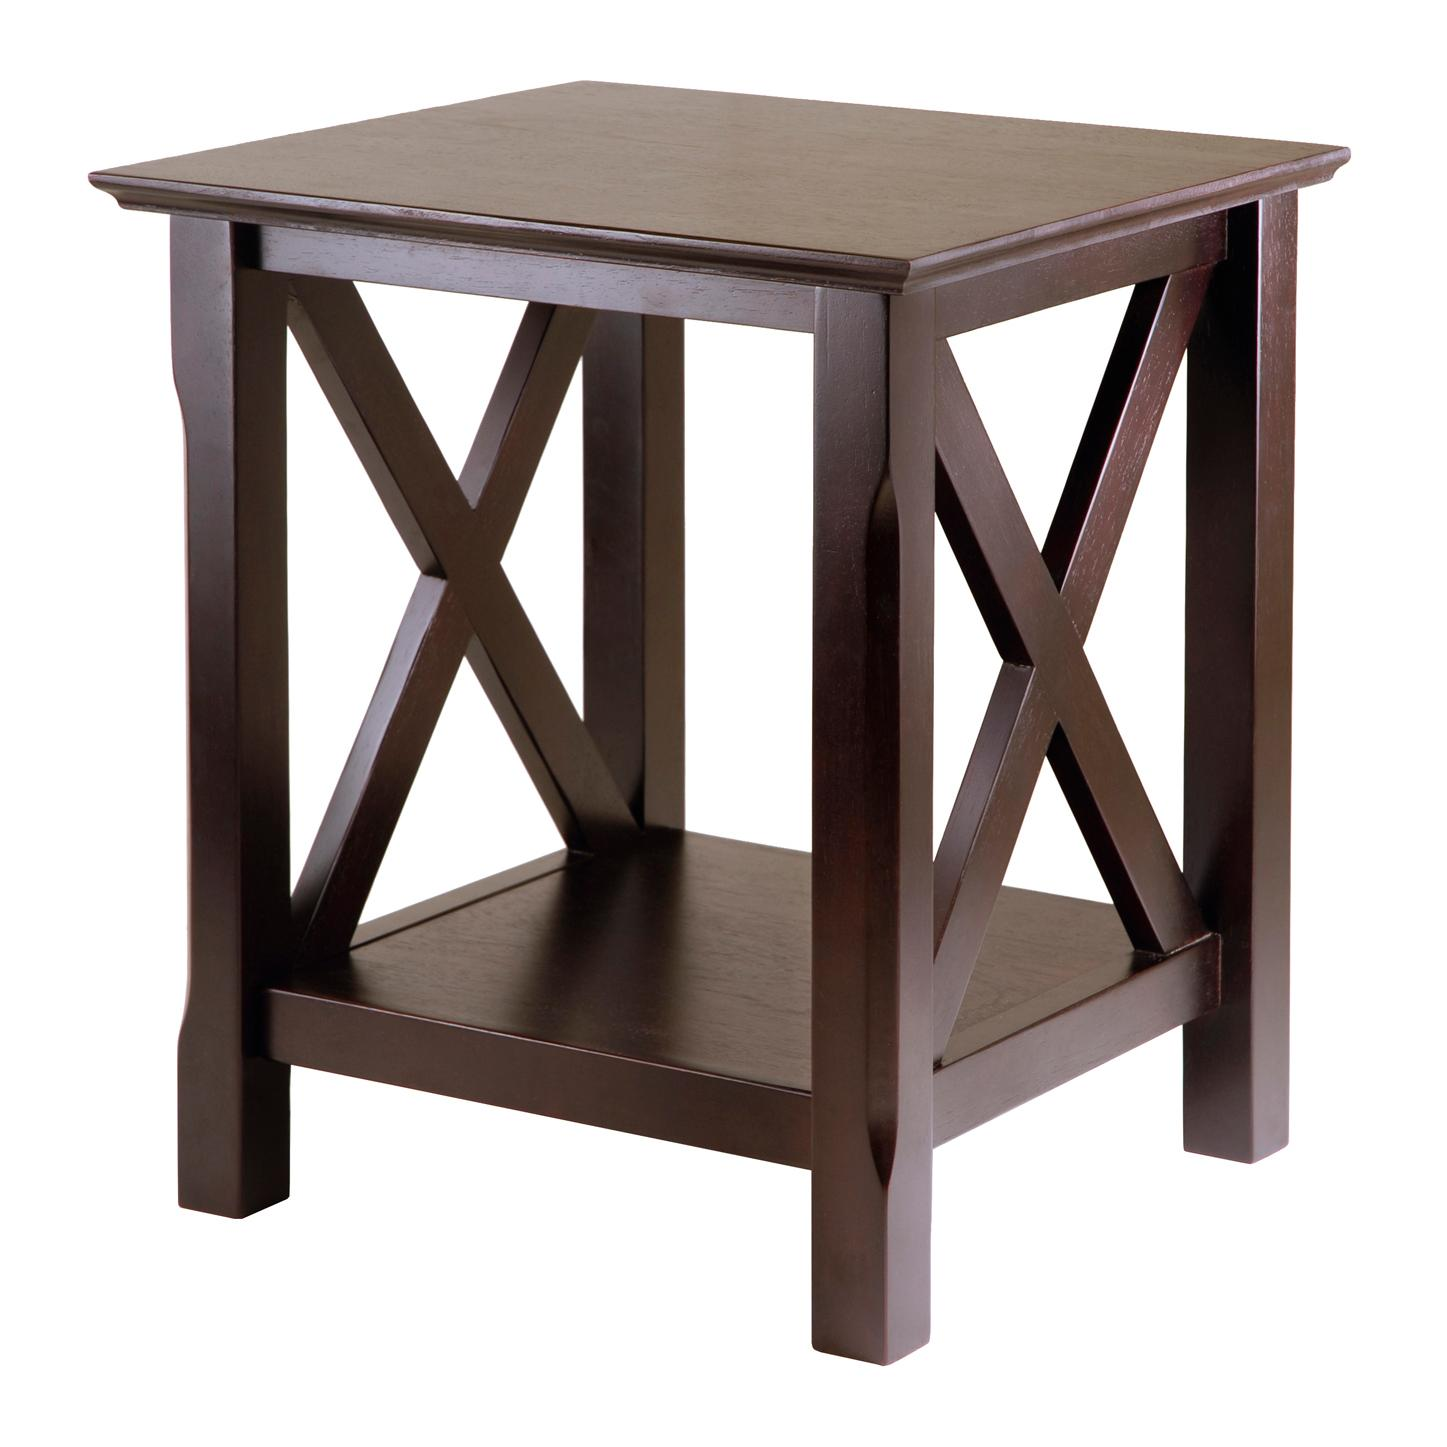 Amazon Winsome Wood Xola End Table Kitchen & Dining